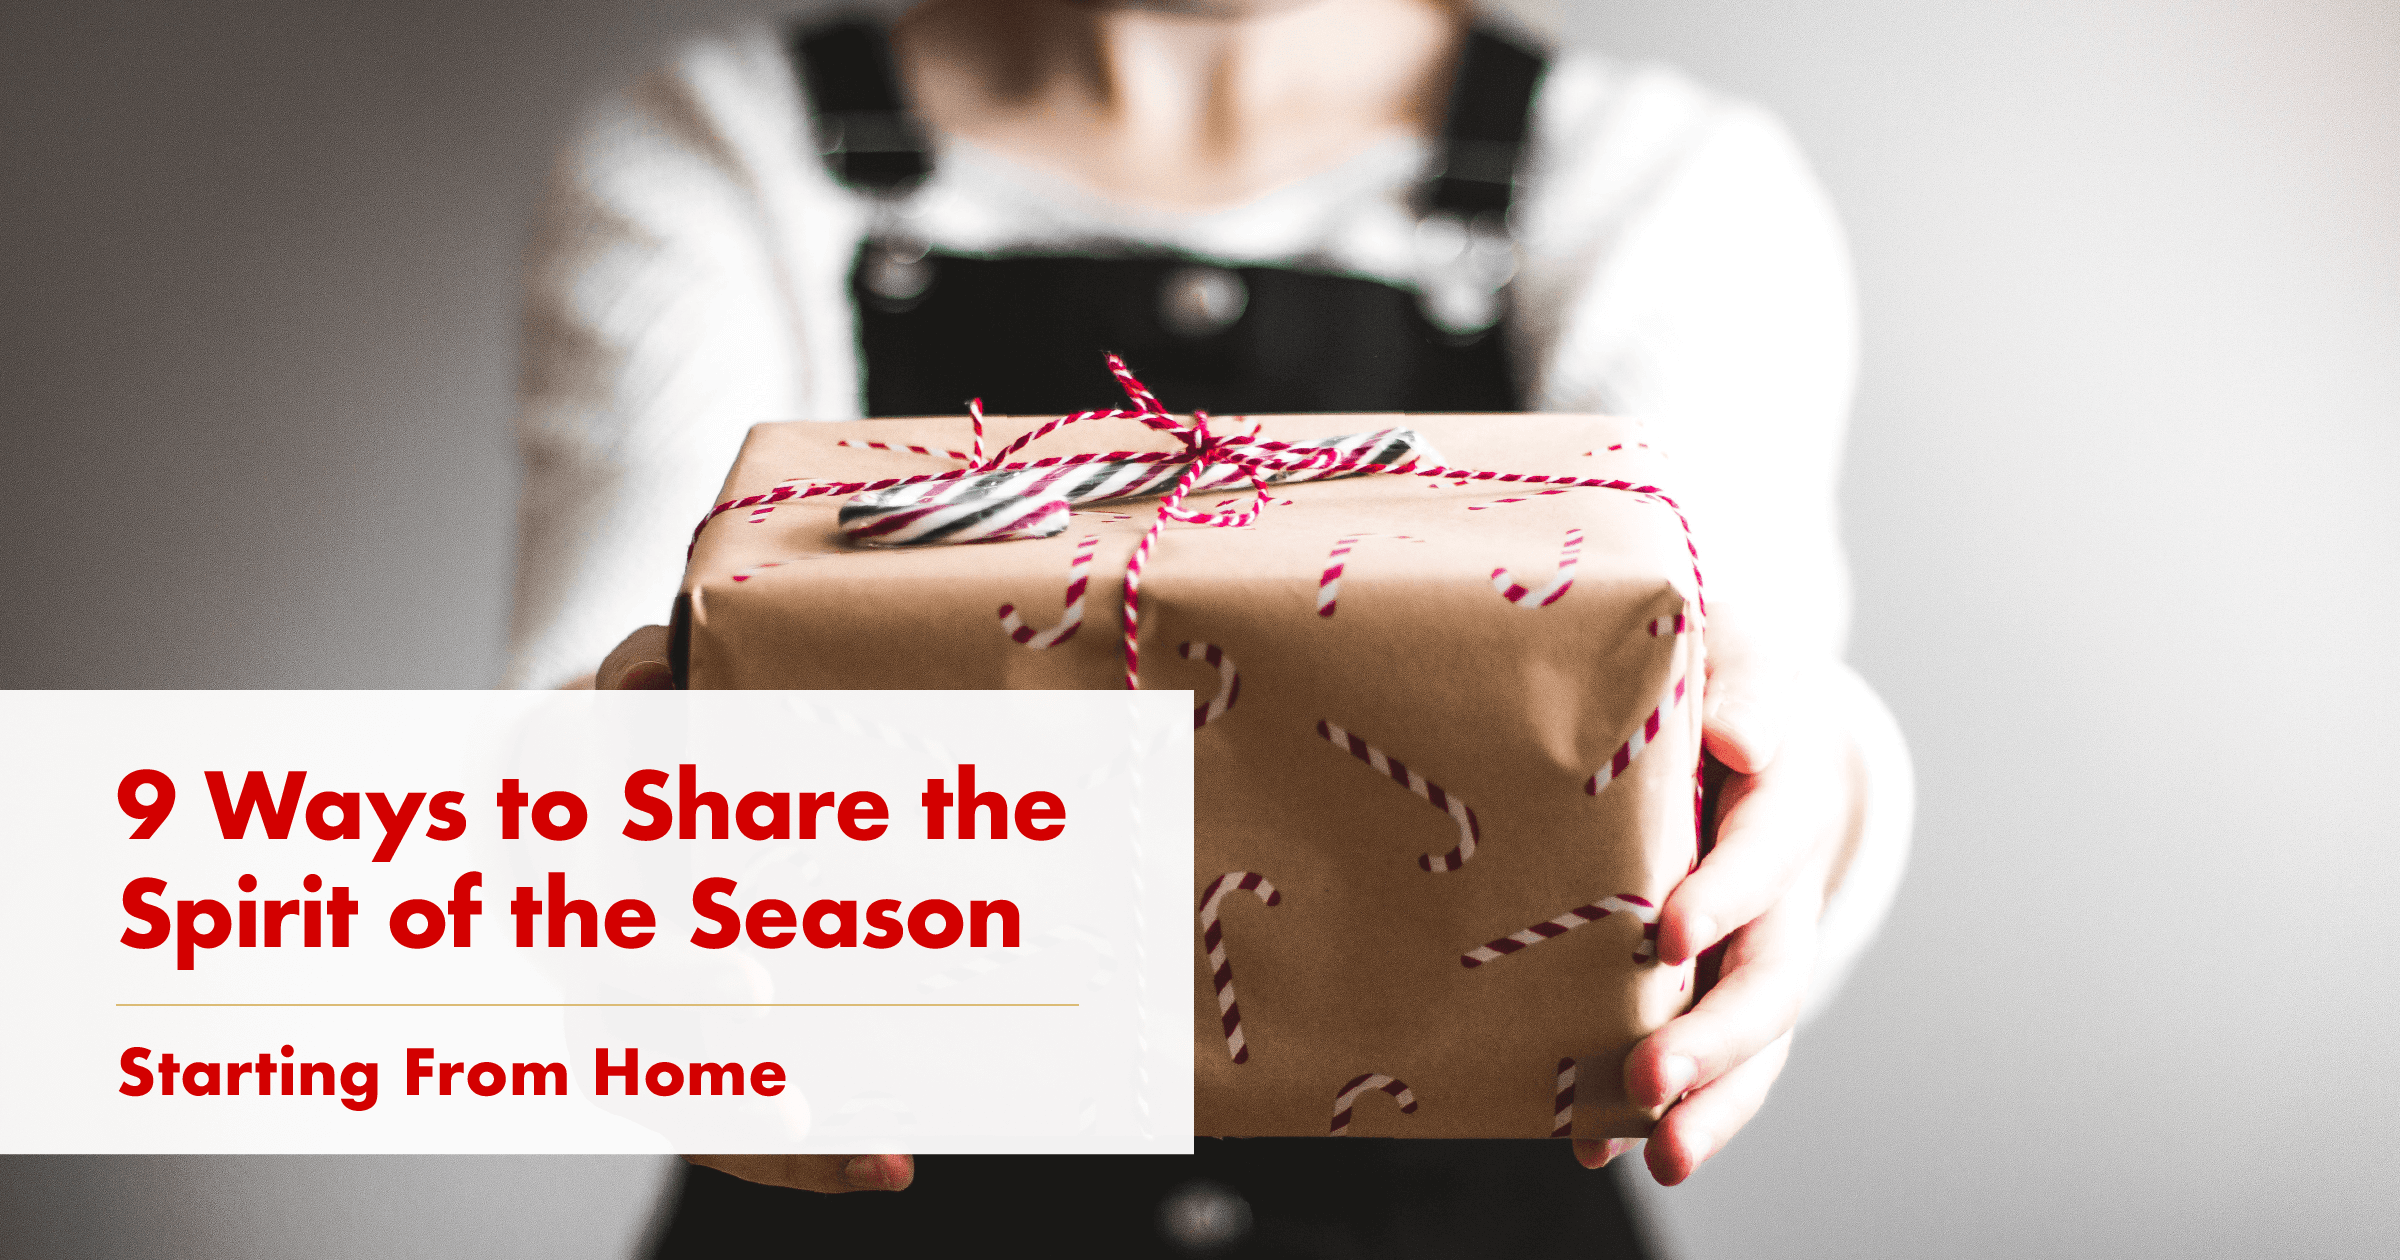 9 Ways to Share the Spirit of the Season—Starting From Home